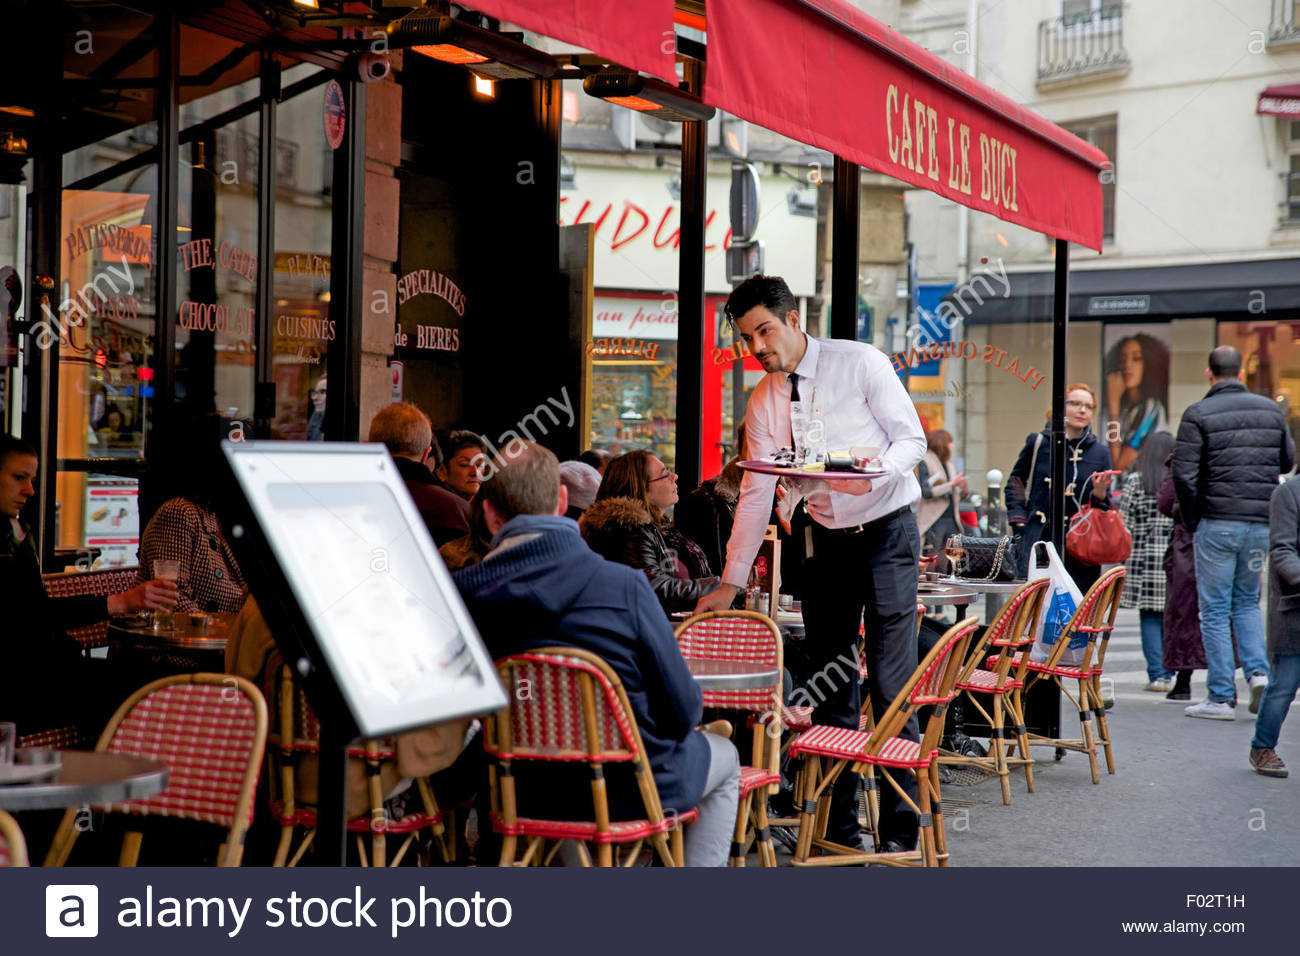 Waiter outside Le Cafe Buci, Paris - Stock Image